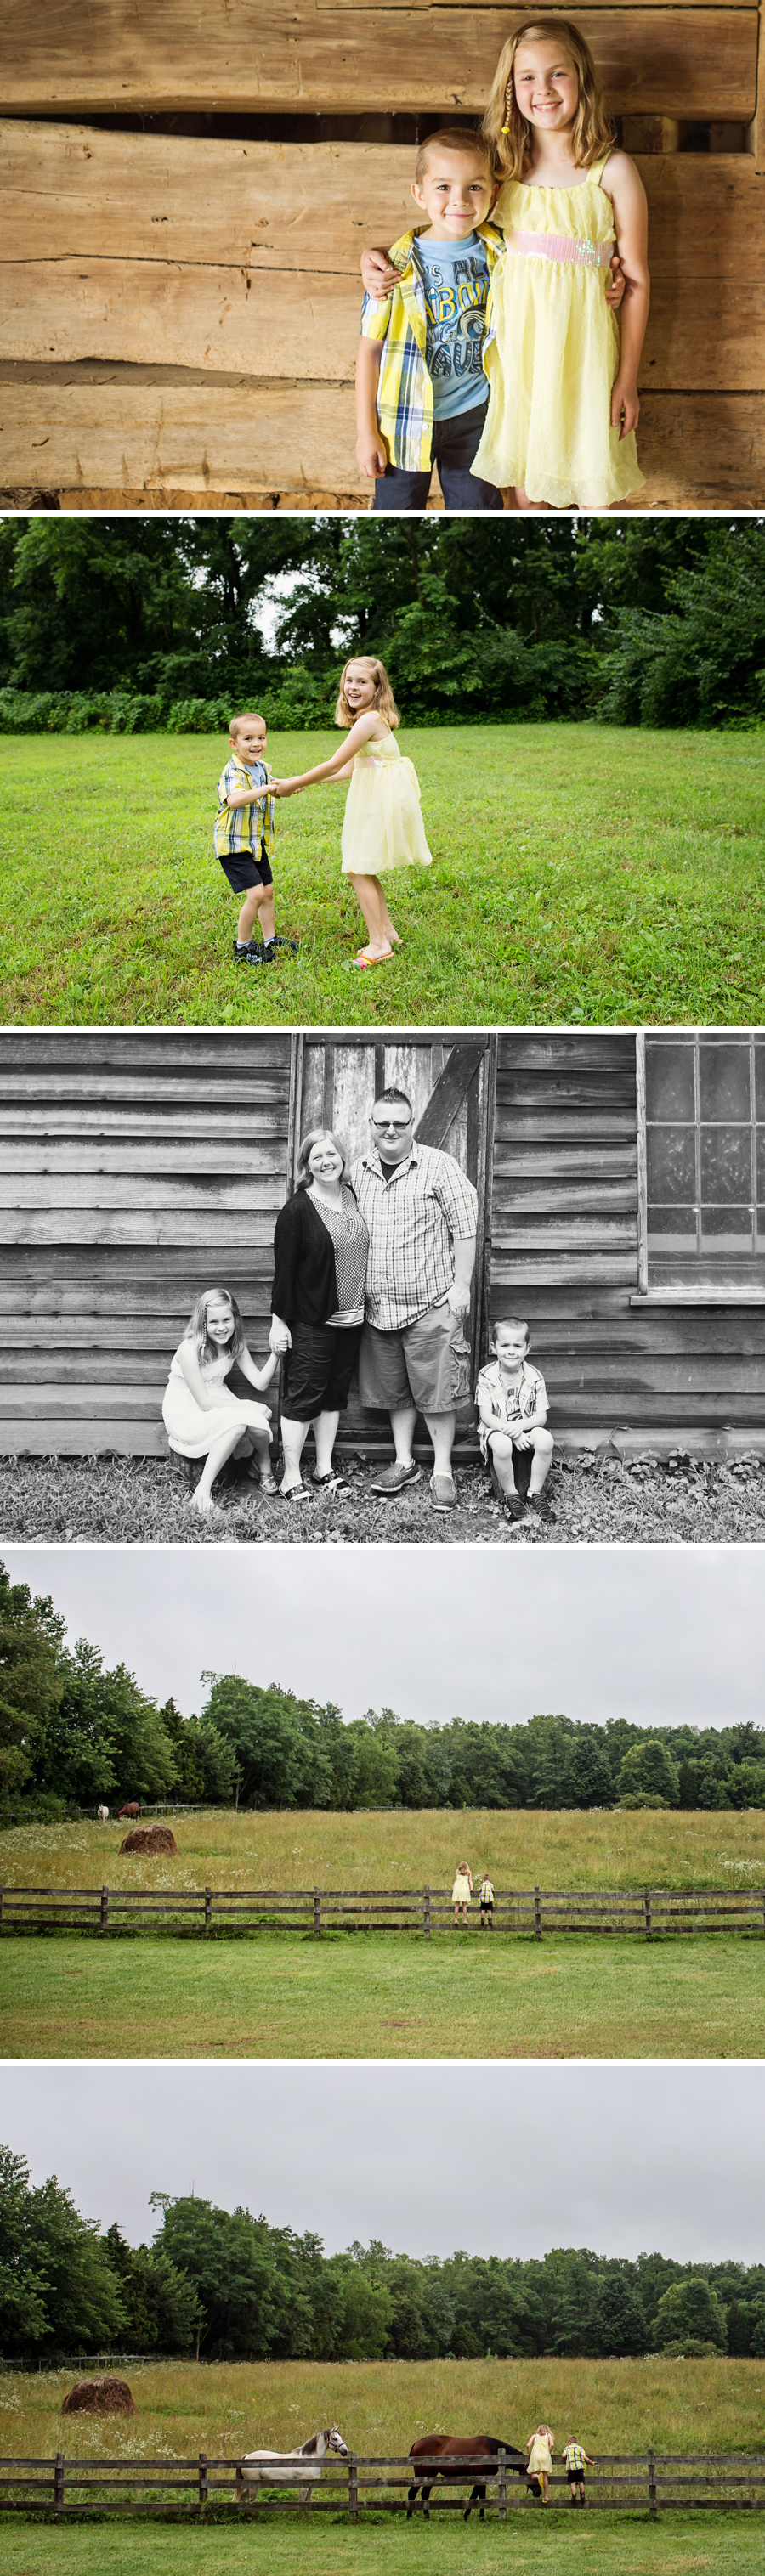 Lexington-Family-PhotographerG007